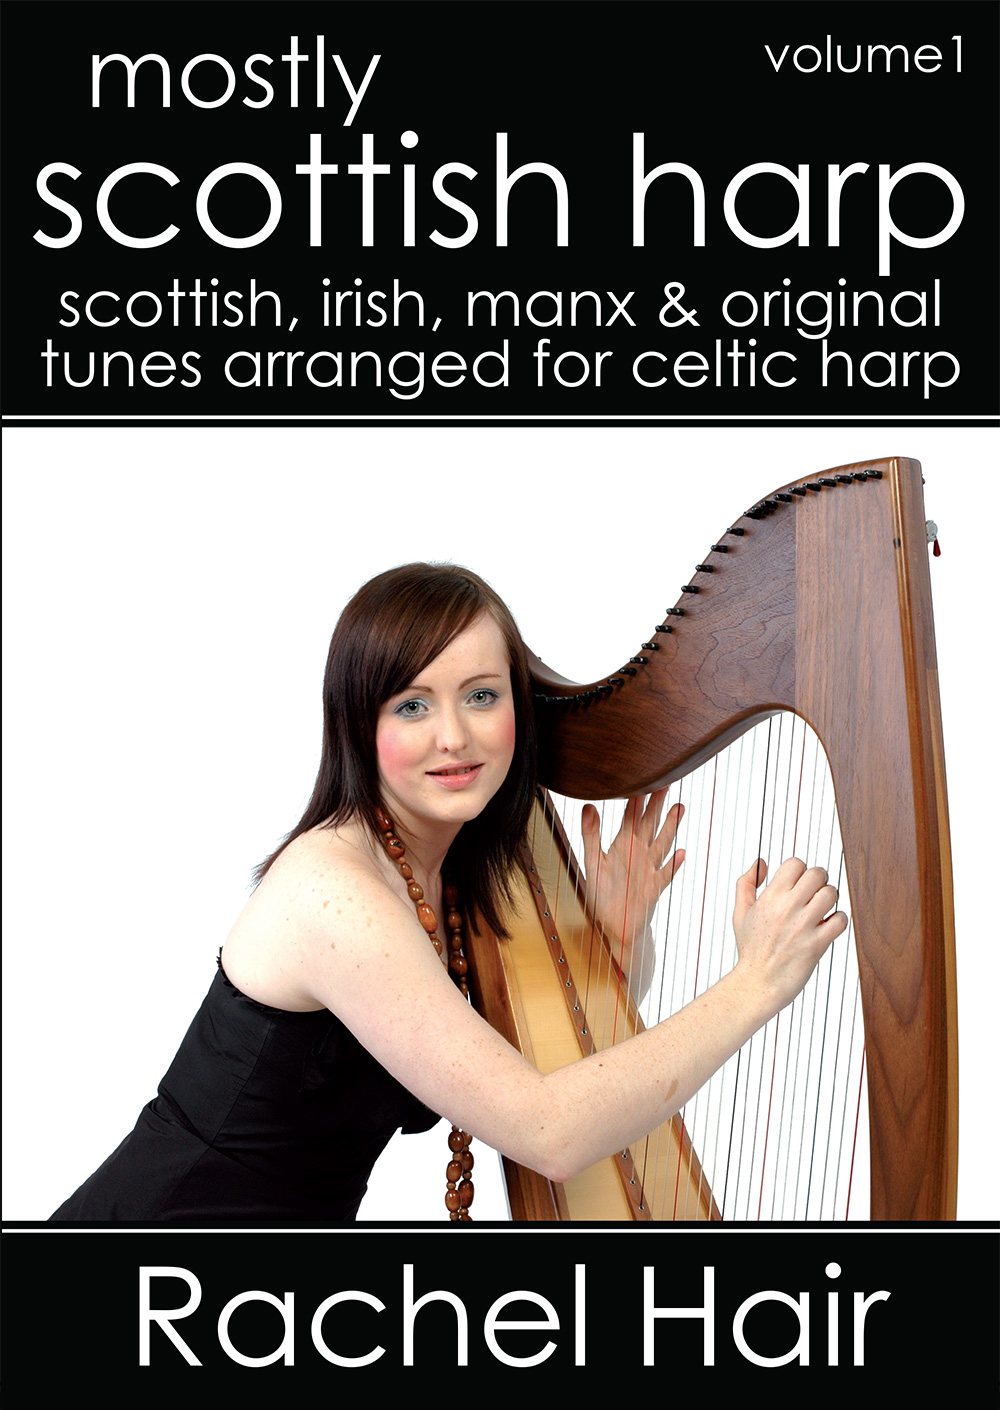 Mostly Scottish Harp Vol1